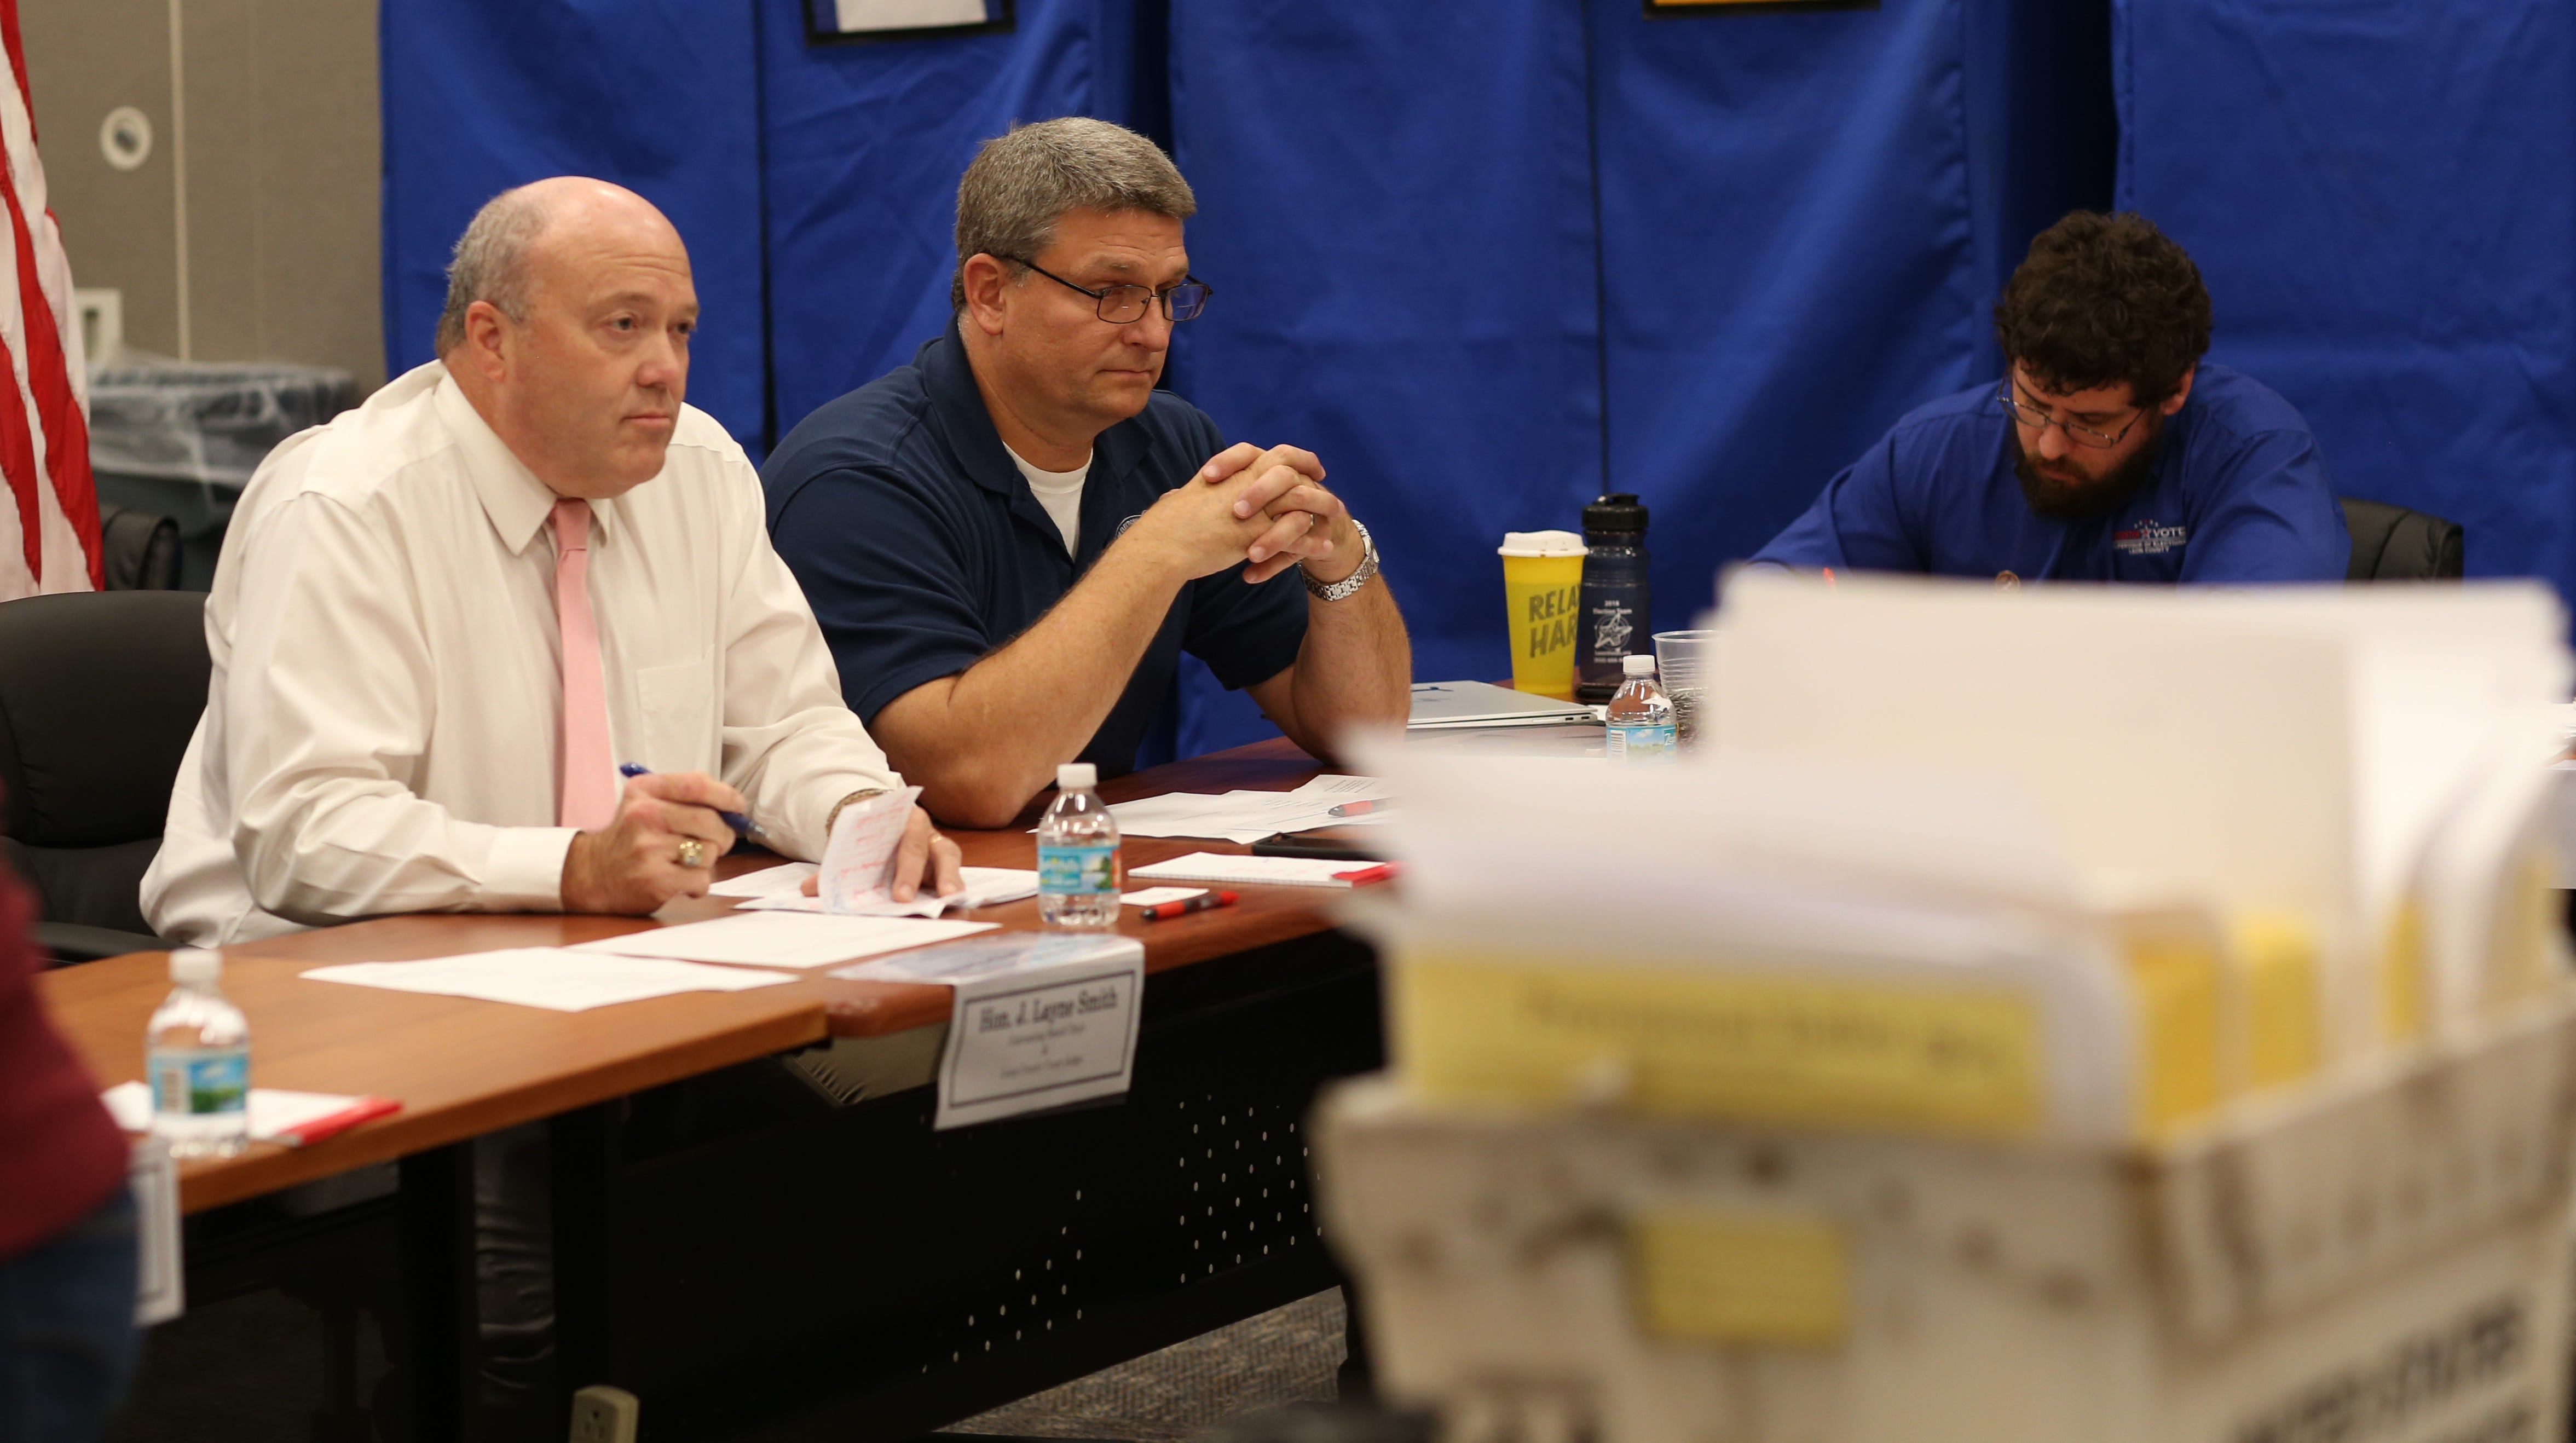 J. Layne Smith, Canvassing Board Chair and Leon County Court Judge, left, and Mark S. Earley, a Canvassing Board member and Leon County Supervisor of Elections, speak  at the Tallahassee Supervisor of Elections Canvassing meeting on Friday, Nov. 9, 2018.